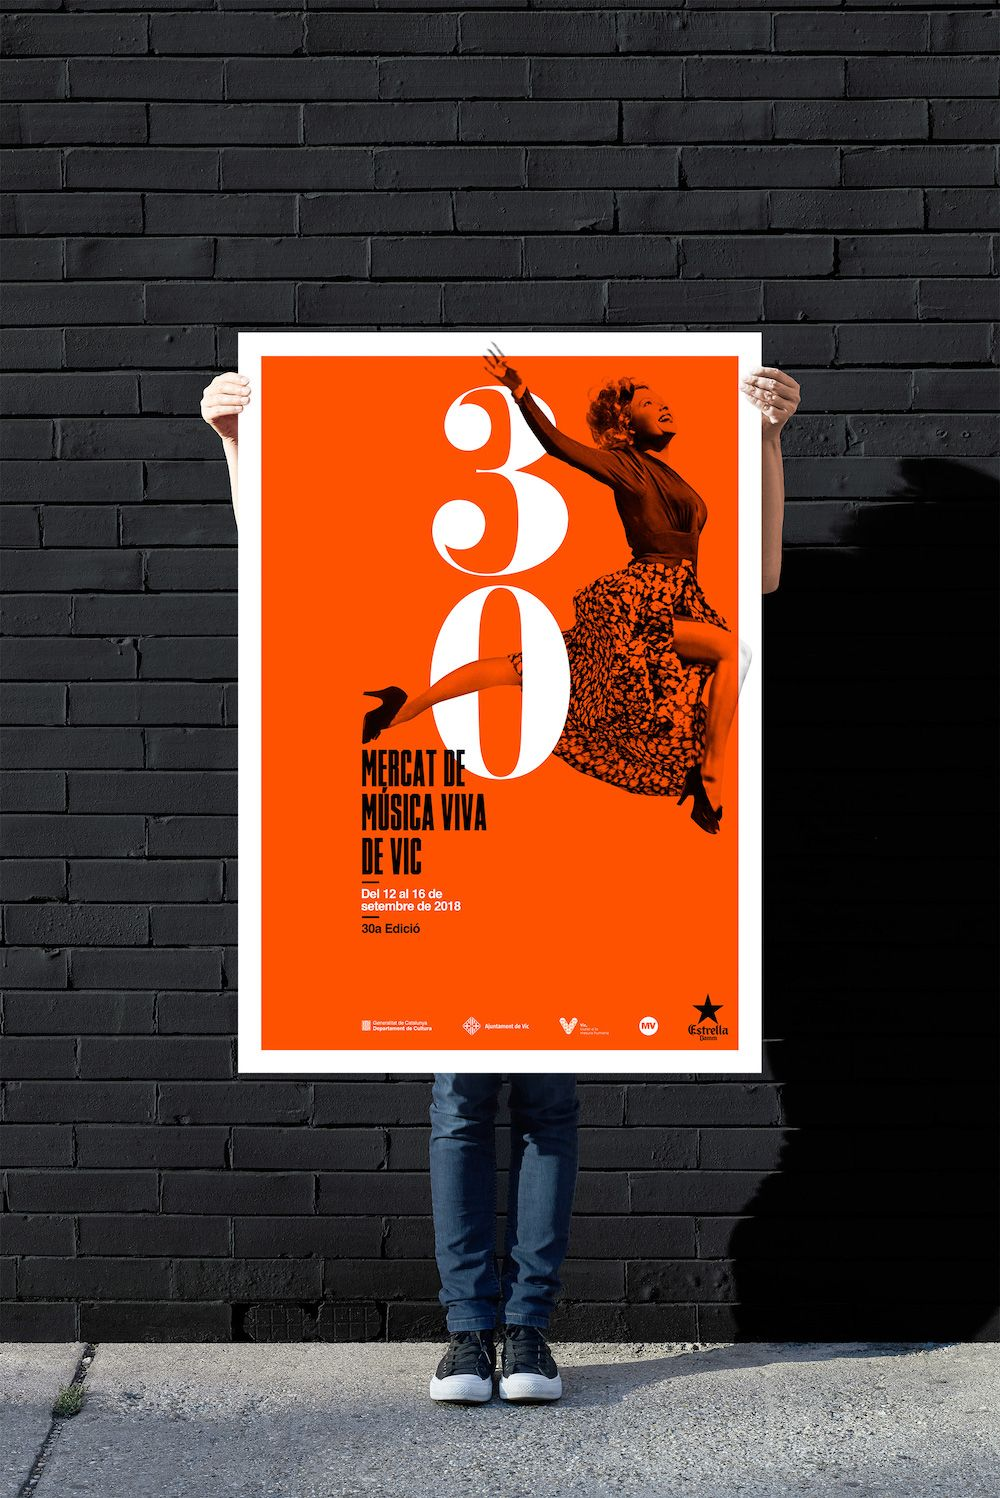 15 New Creative Poster Ideas Examples Templates Daily Design Inspiration 38 Creative Posters Event Poster Design Creative Poster Design,Architecture Building Design